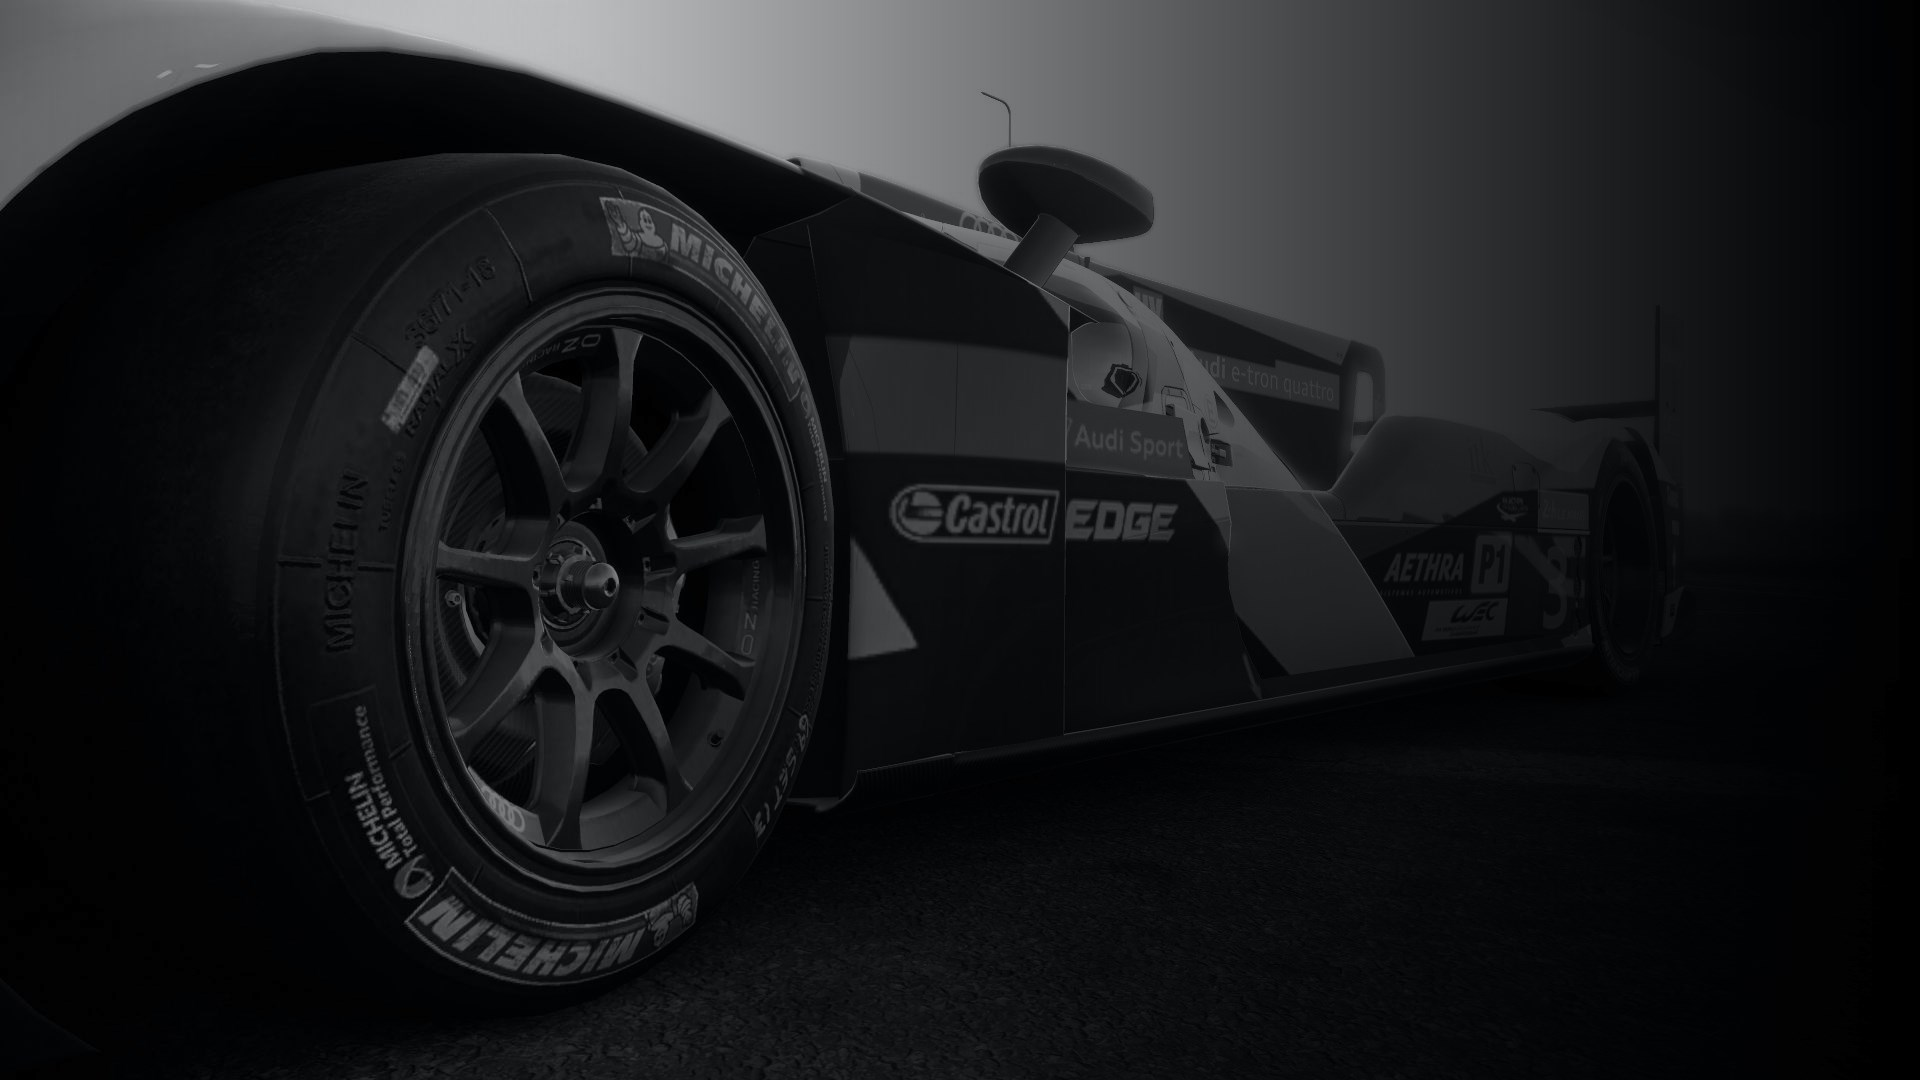 Project CARS - Audi Ruapuna Park Expansion